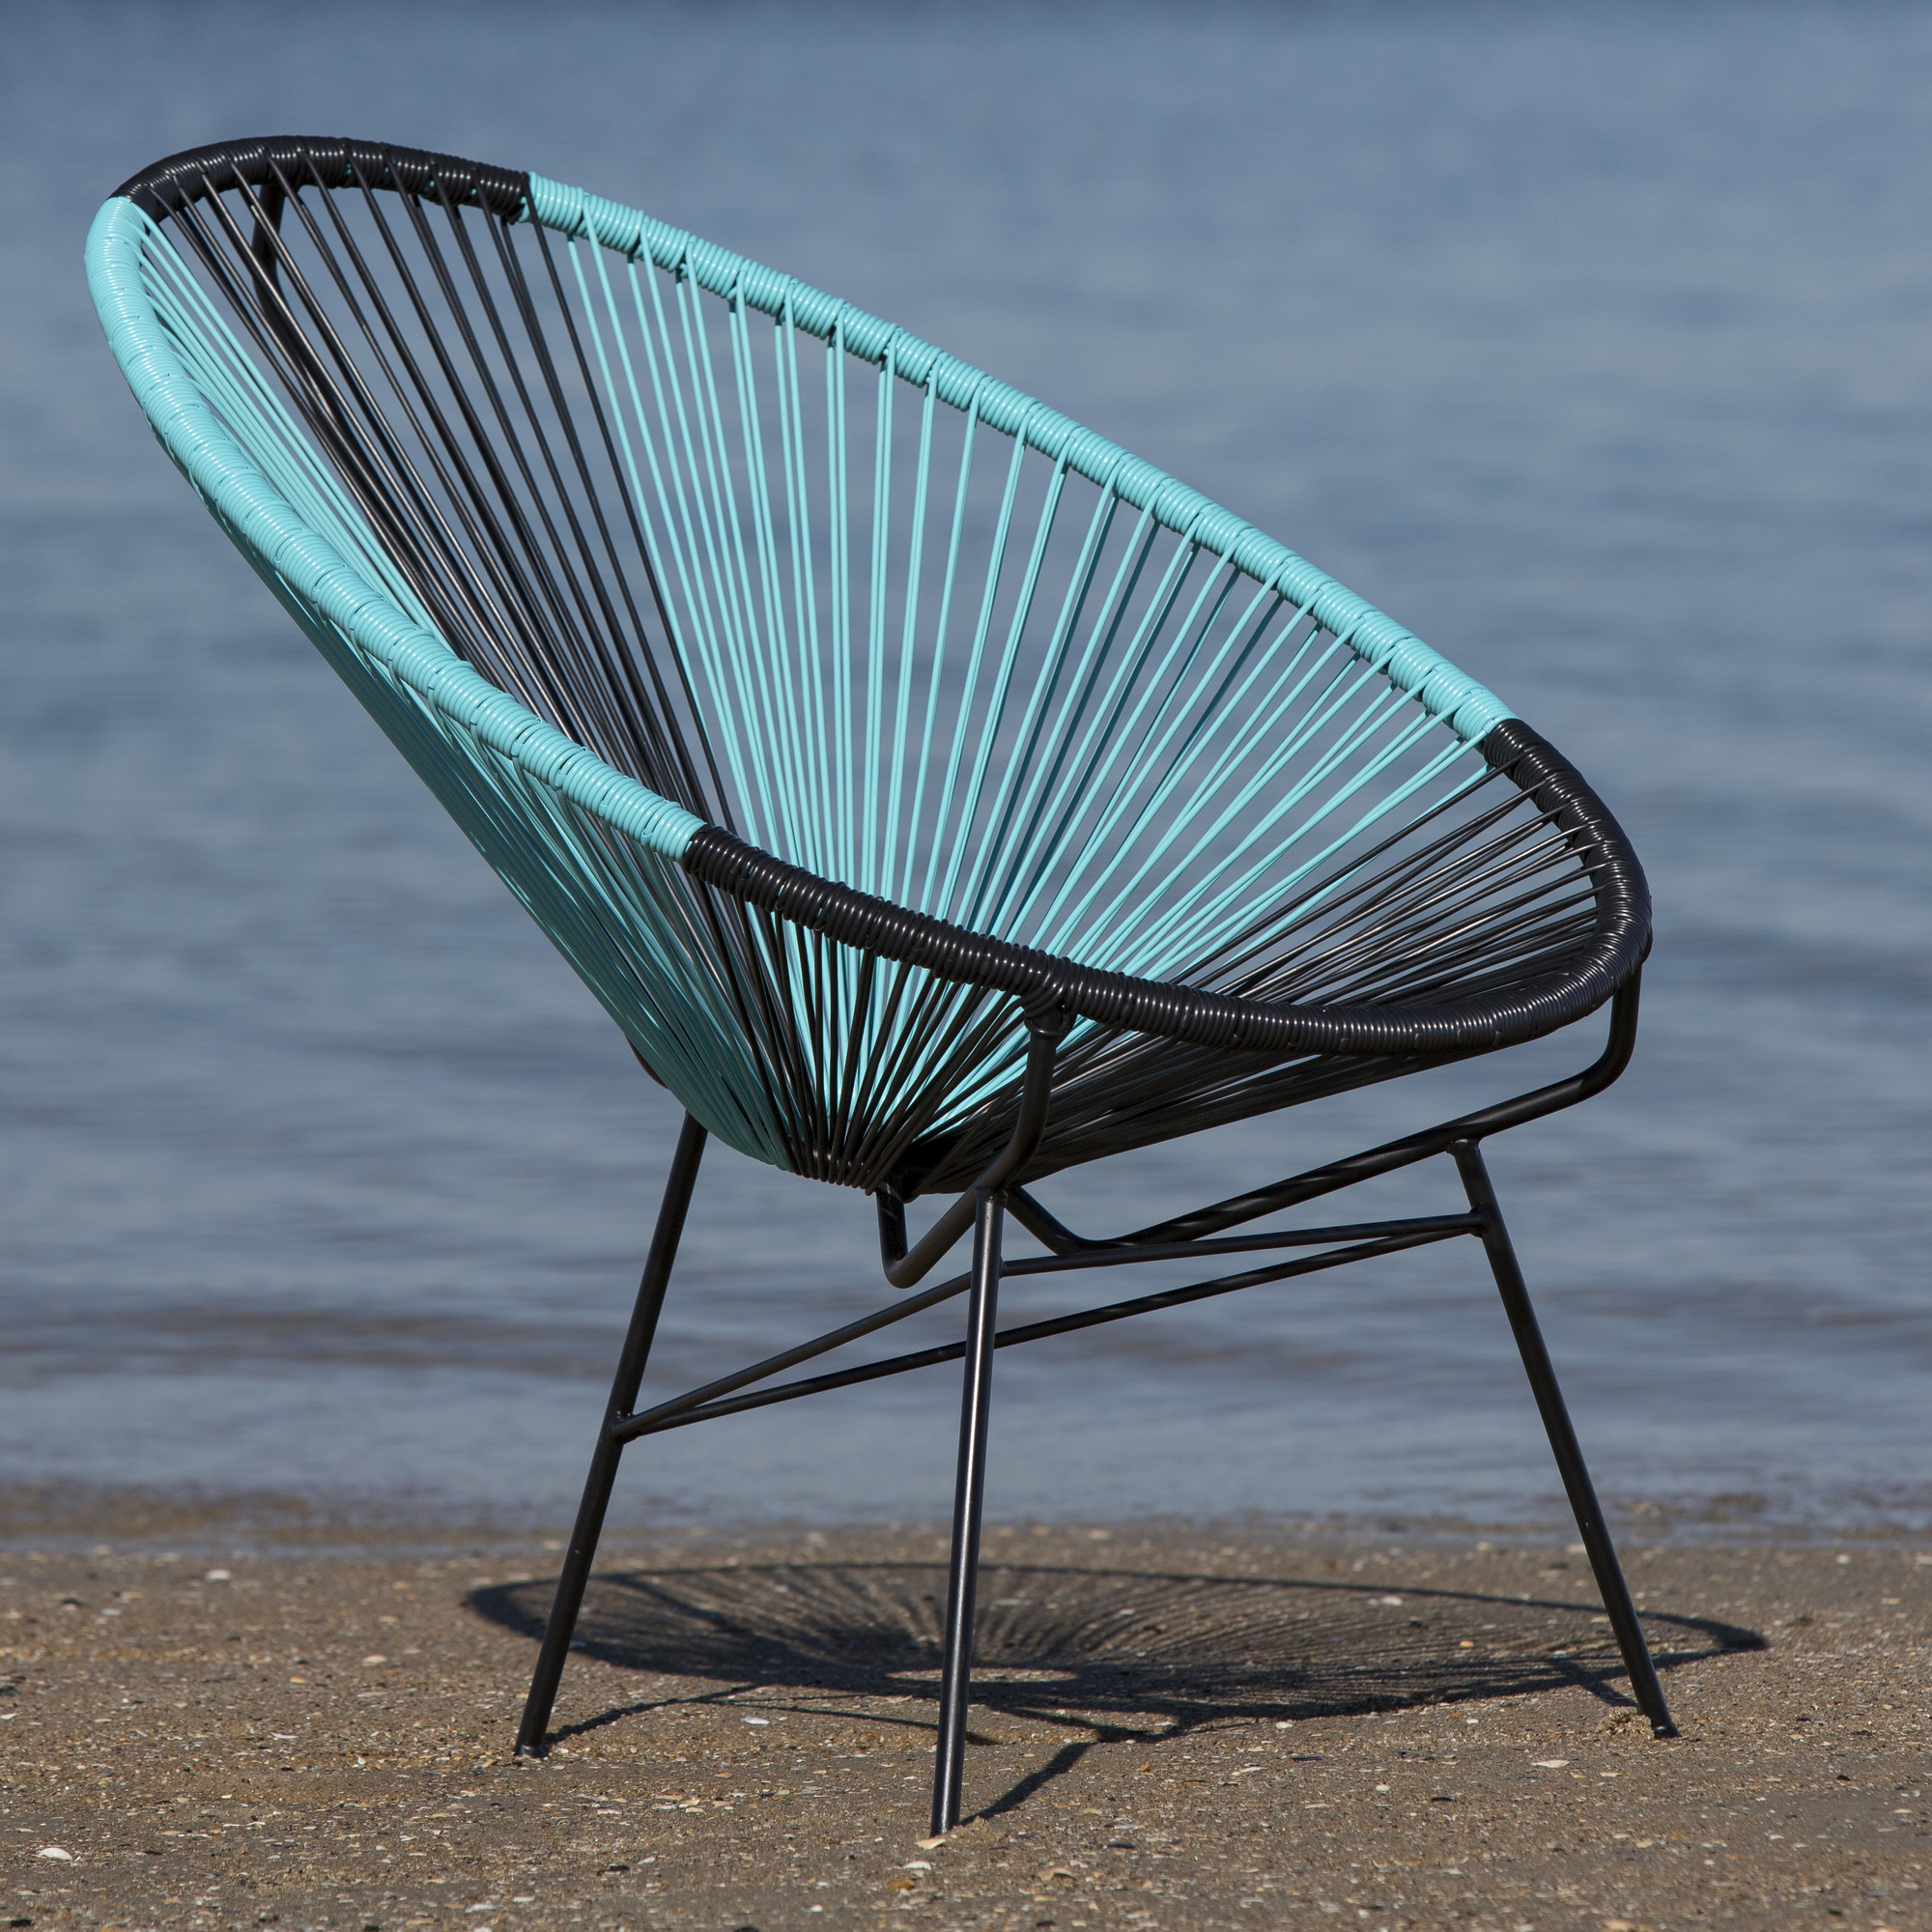 Acapulco Chair For Sale New Replica Outdoor Acapulco Chair Ebay